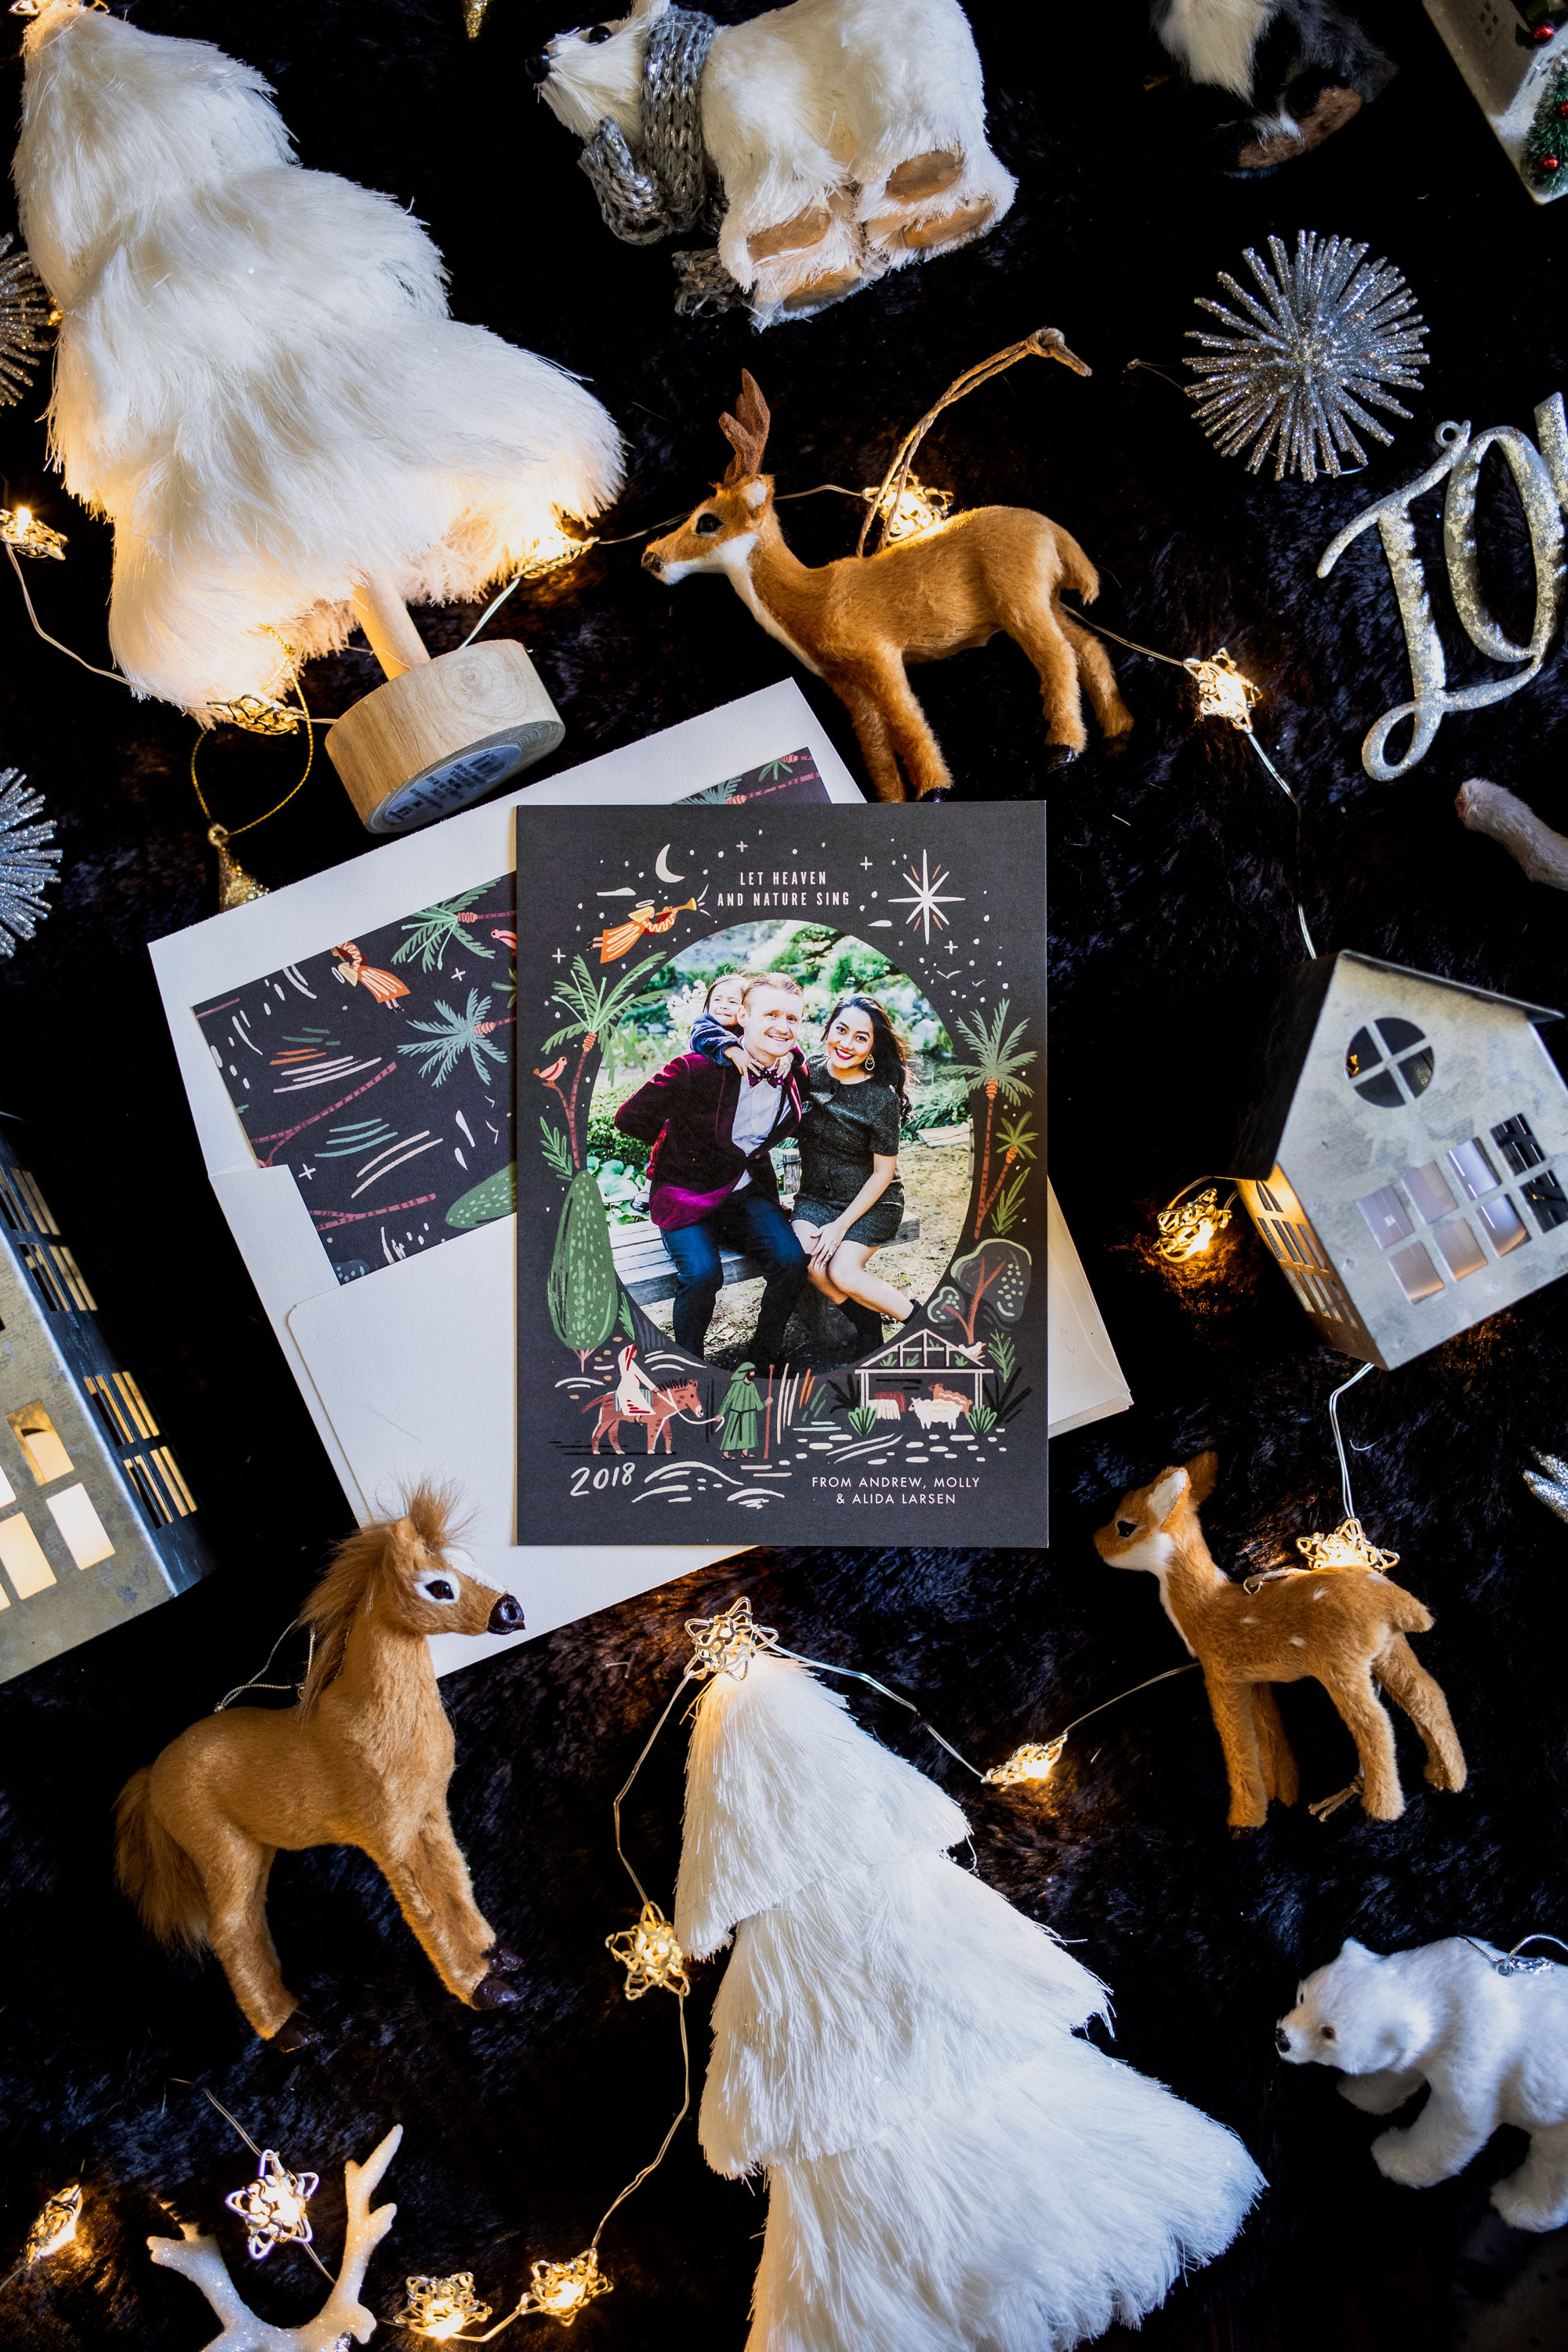 3 Tips to Create A Memorable Personalized Holiday Card with Ease-Allaboutgoodvibes.com_molly Larsen-Beauty Style Blogger-IG @thevibescloset-Minted.com-Christmas card idea_2